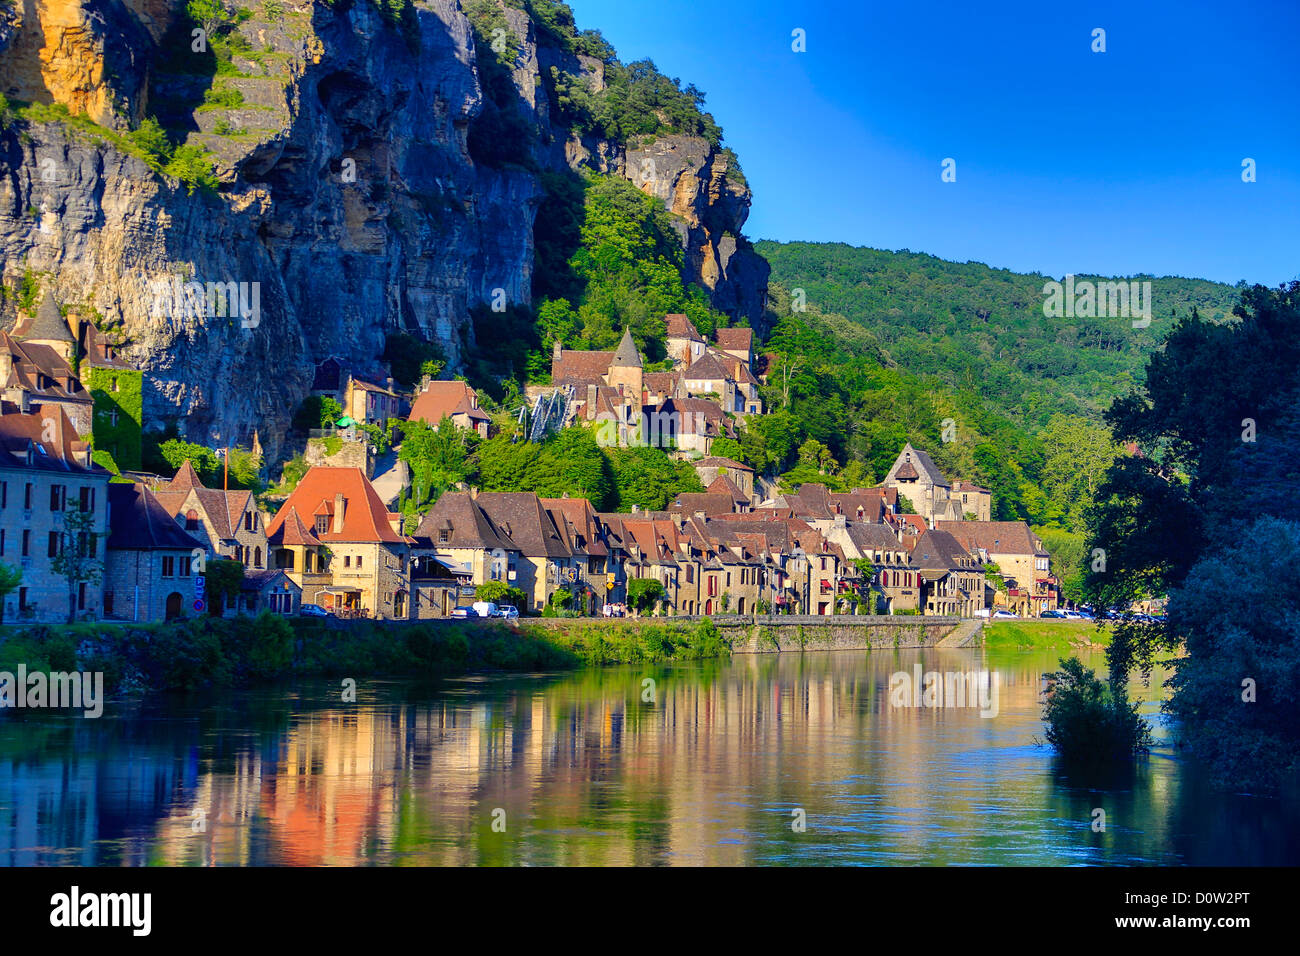 France, Europe, travel, Dordogne, La Roque Gageac, River, architecture, medieval, reflection, traditional, valley, Stock Photo